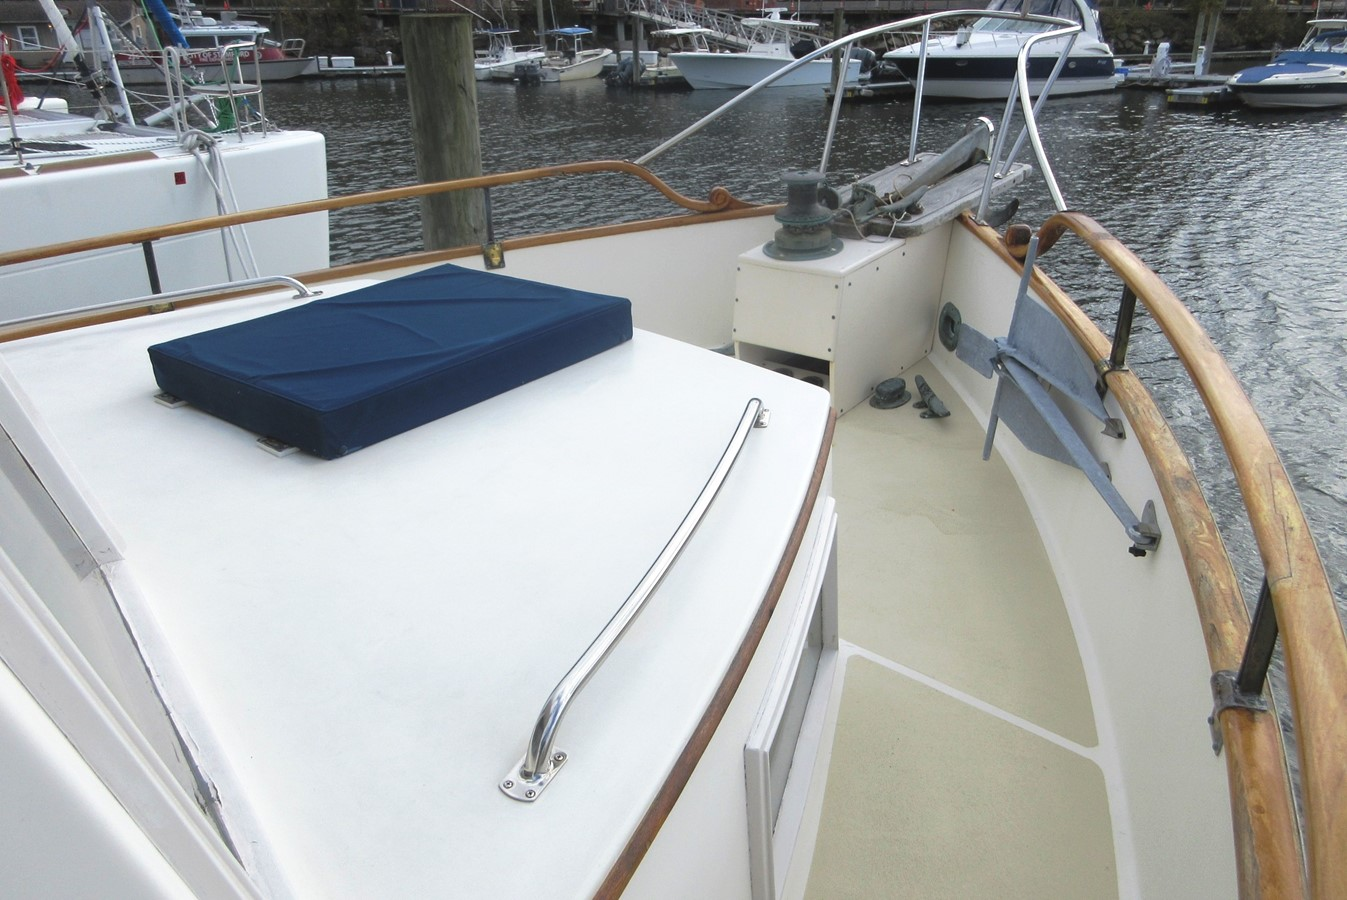 Fore deck, starboard side 1980 GRAND BANKS 42 Classic Trawler 2865699